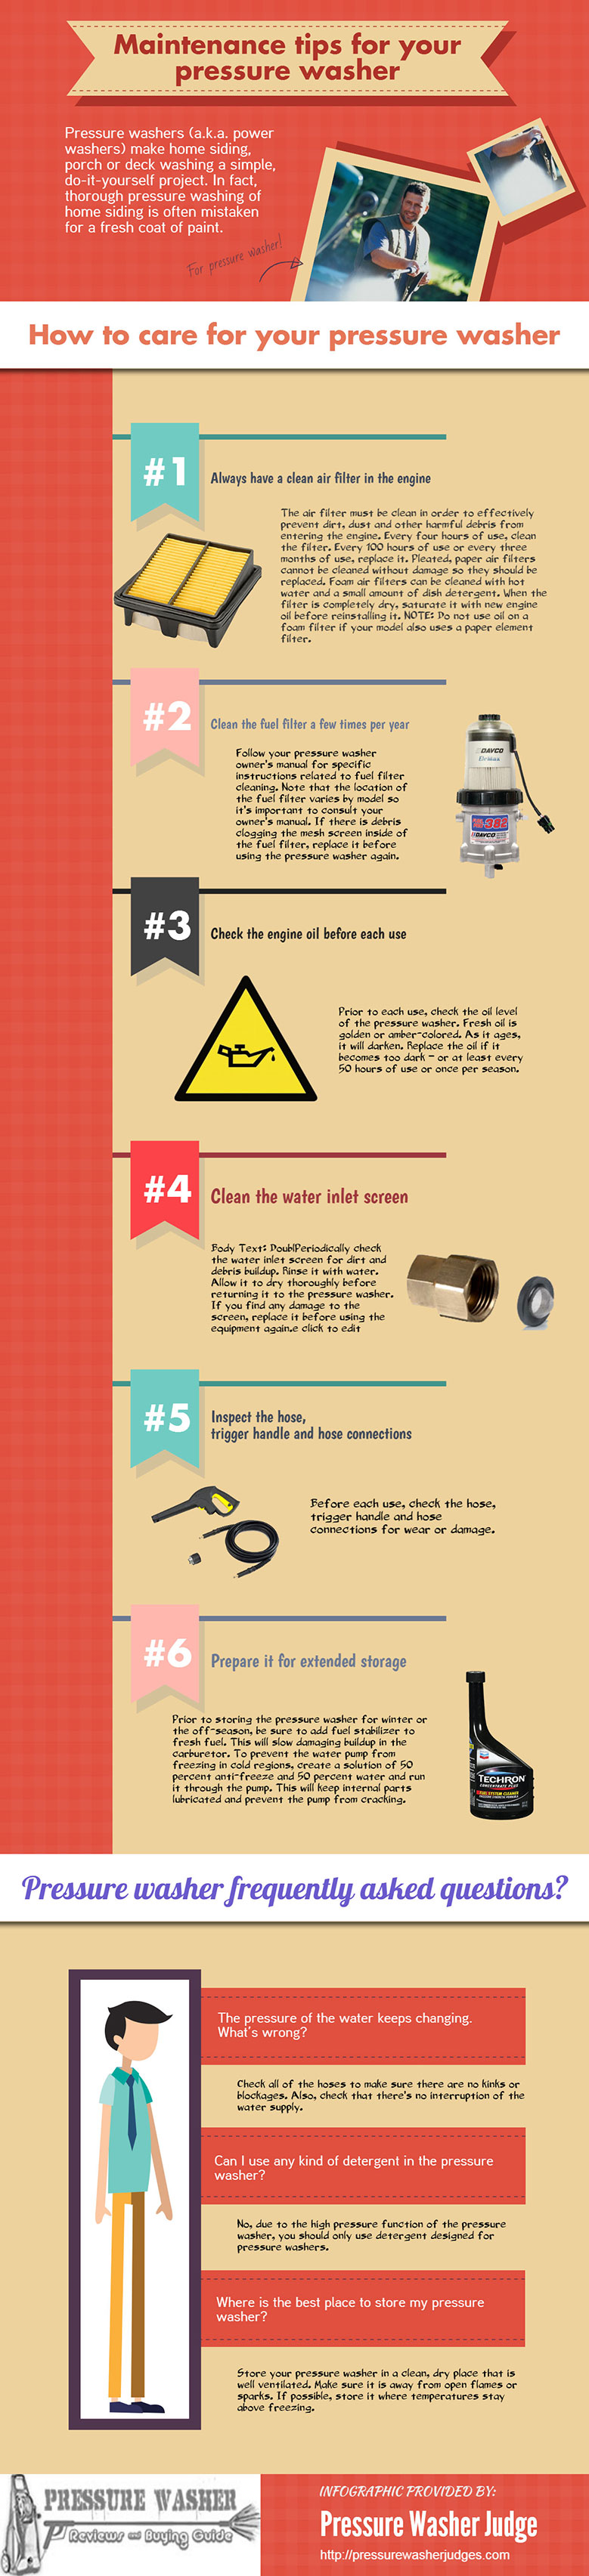 Maintenance tips for your pressure washer Infographic